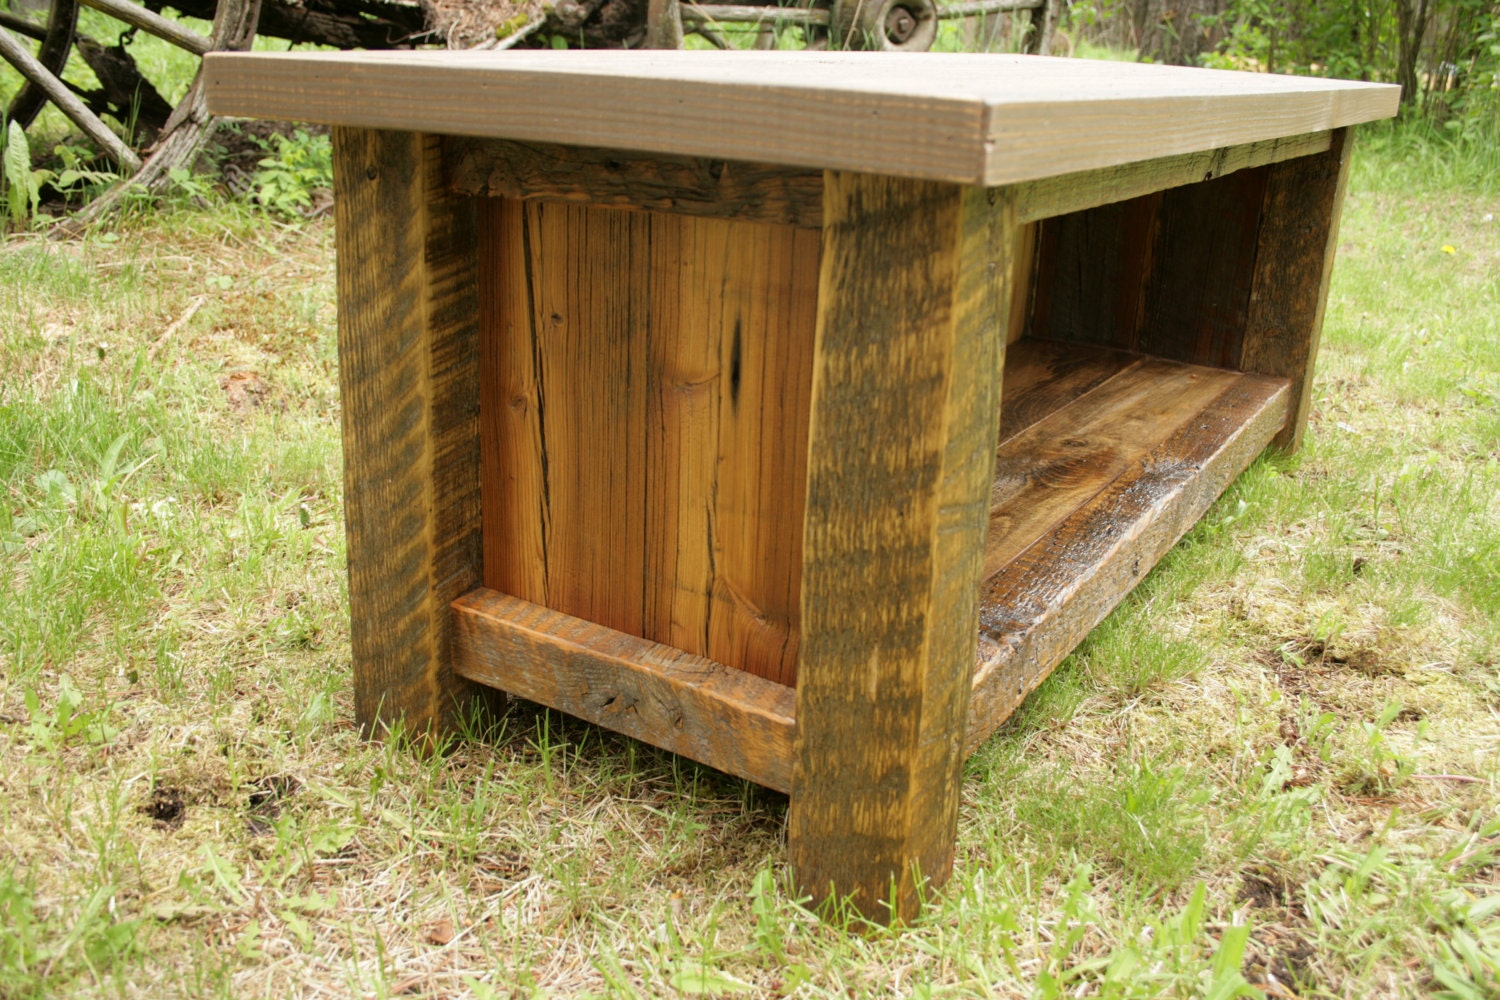 Rustic Wooden Foyer Bench : Rustic reclaimed barnwood entry bench by echopeakdesign on